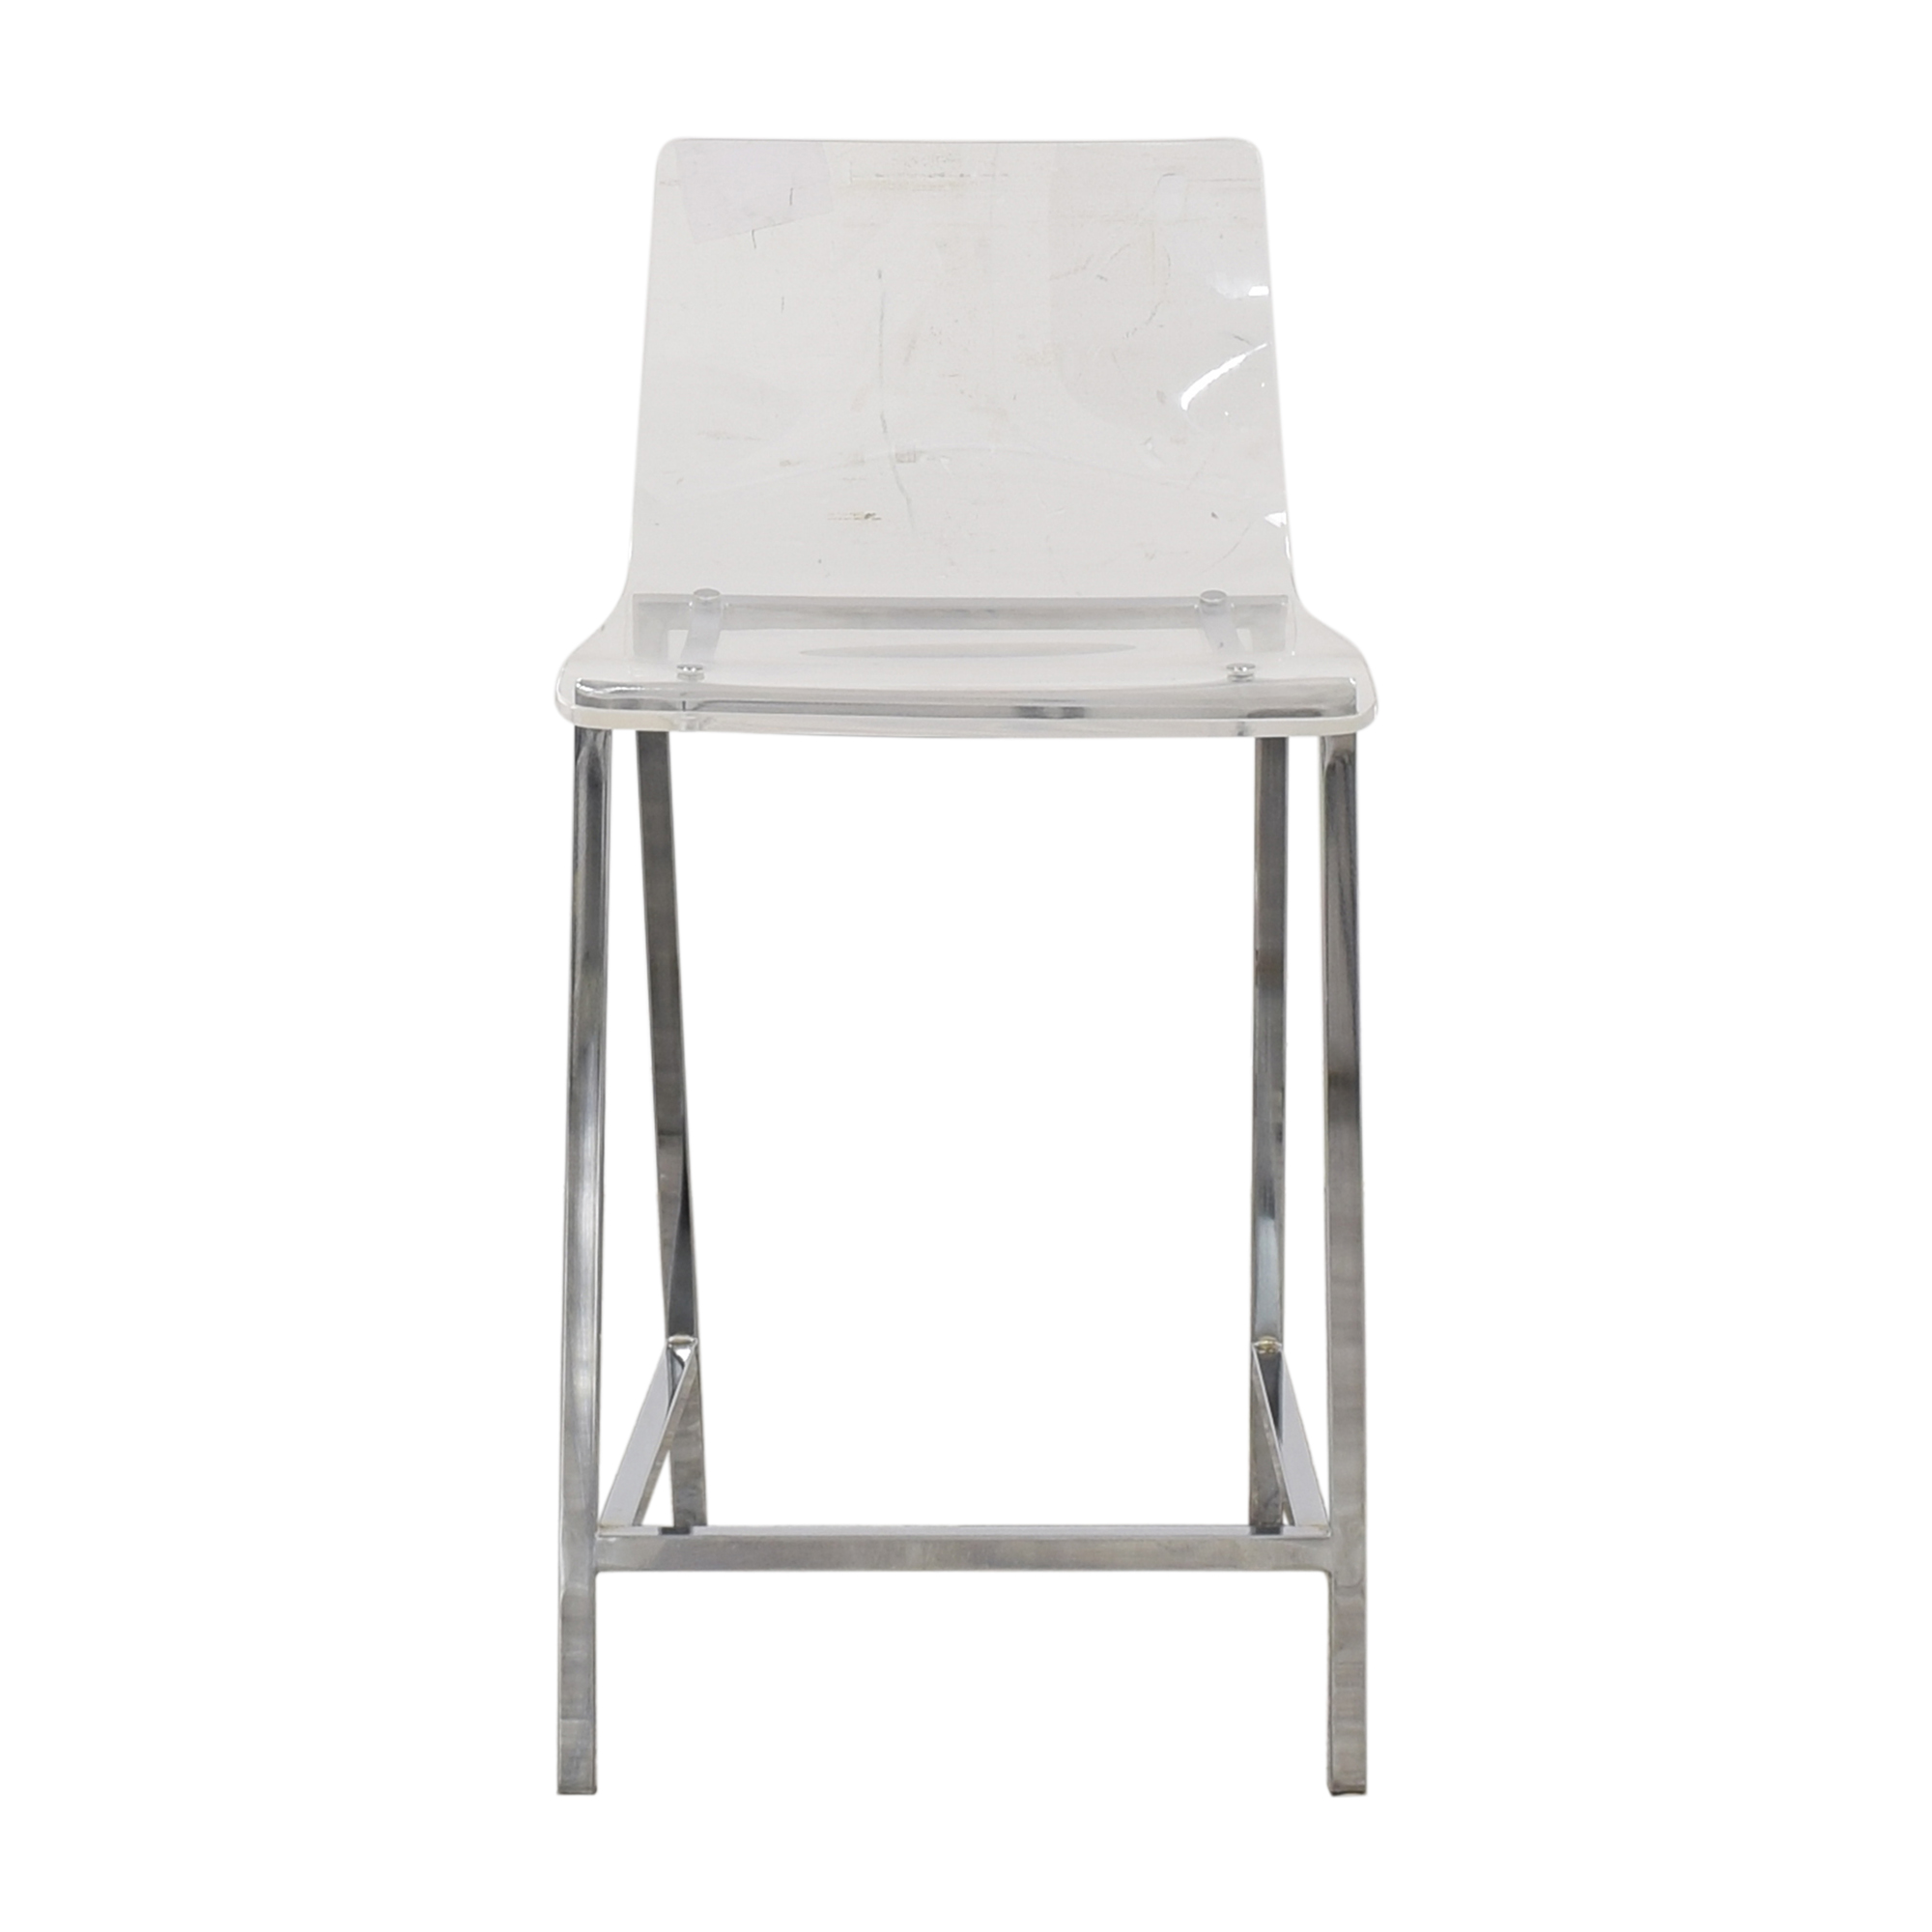 CB2 CB2 Chiaro Clear Counter Stool used